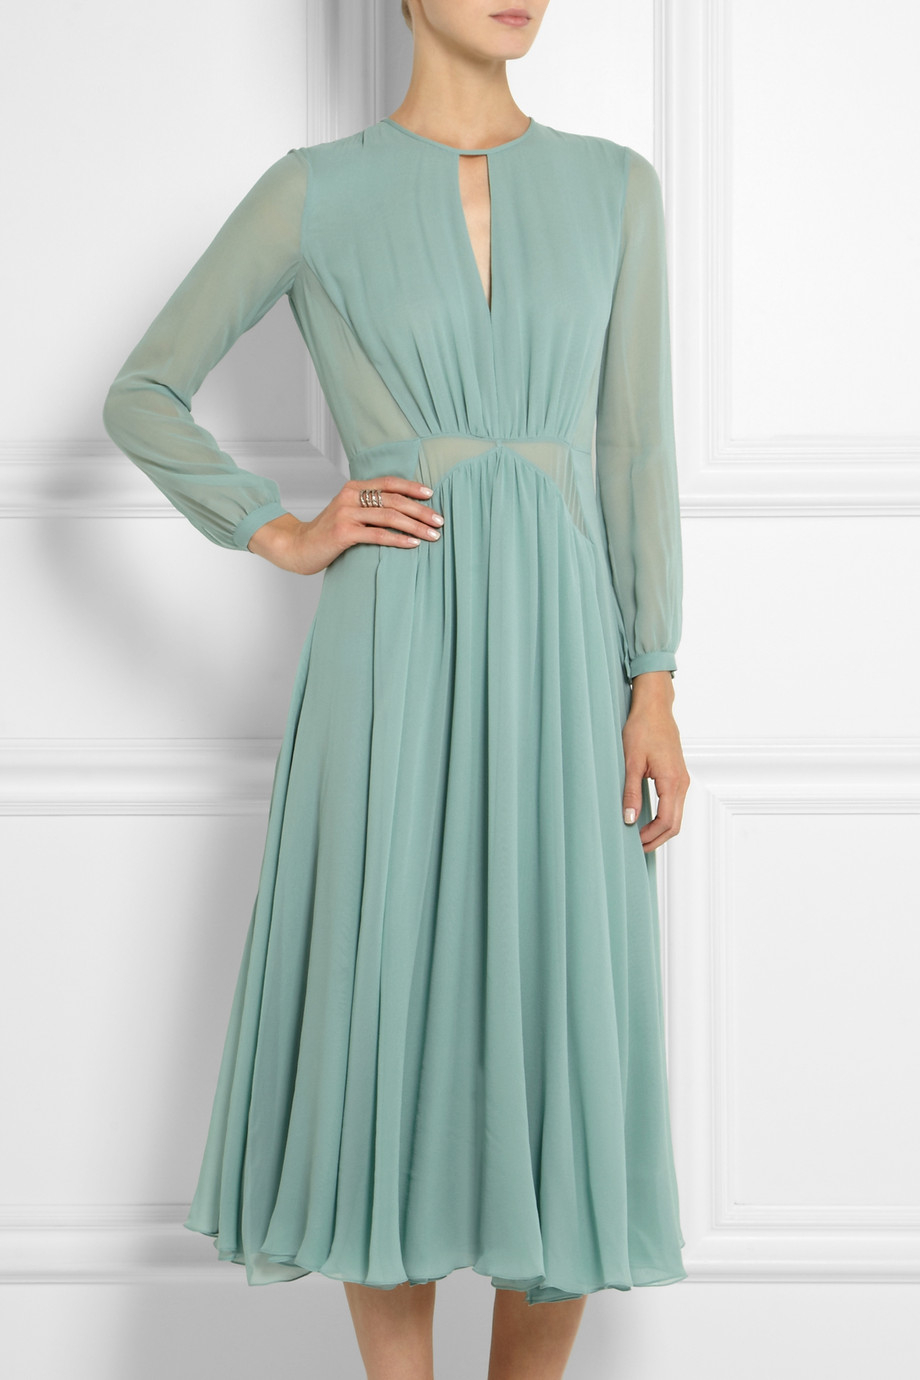 91e94f466 Burberry Prorsum Silk Chiffon Midi Dress in Green - Lyst